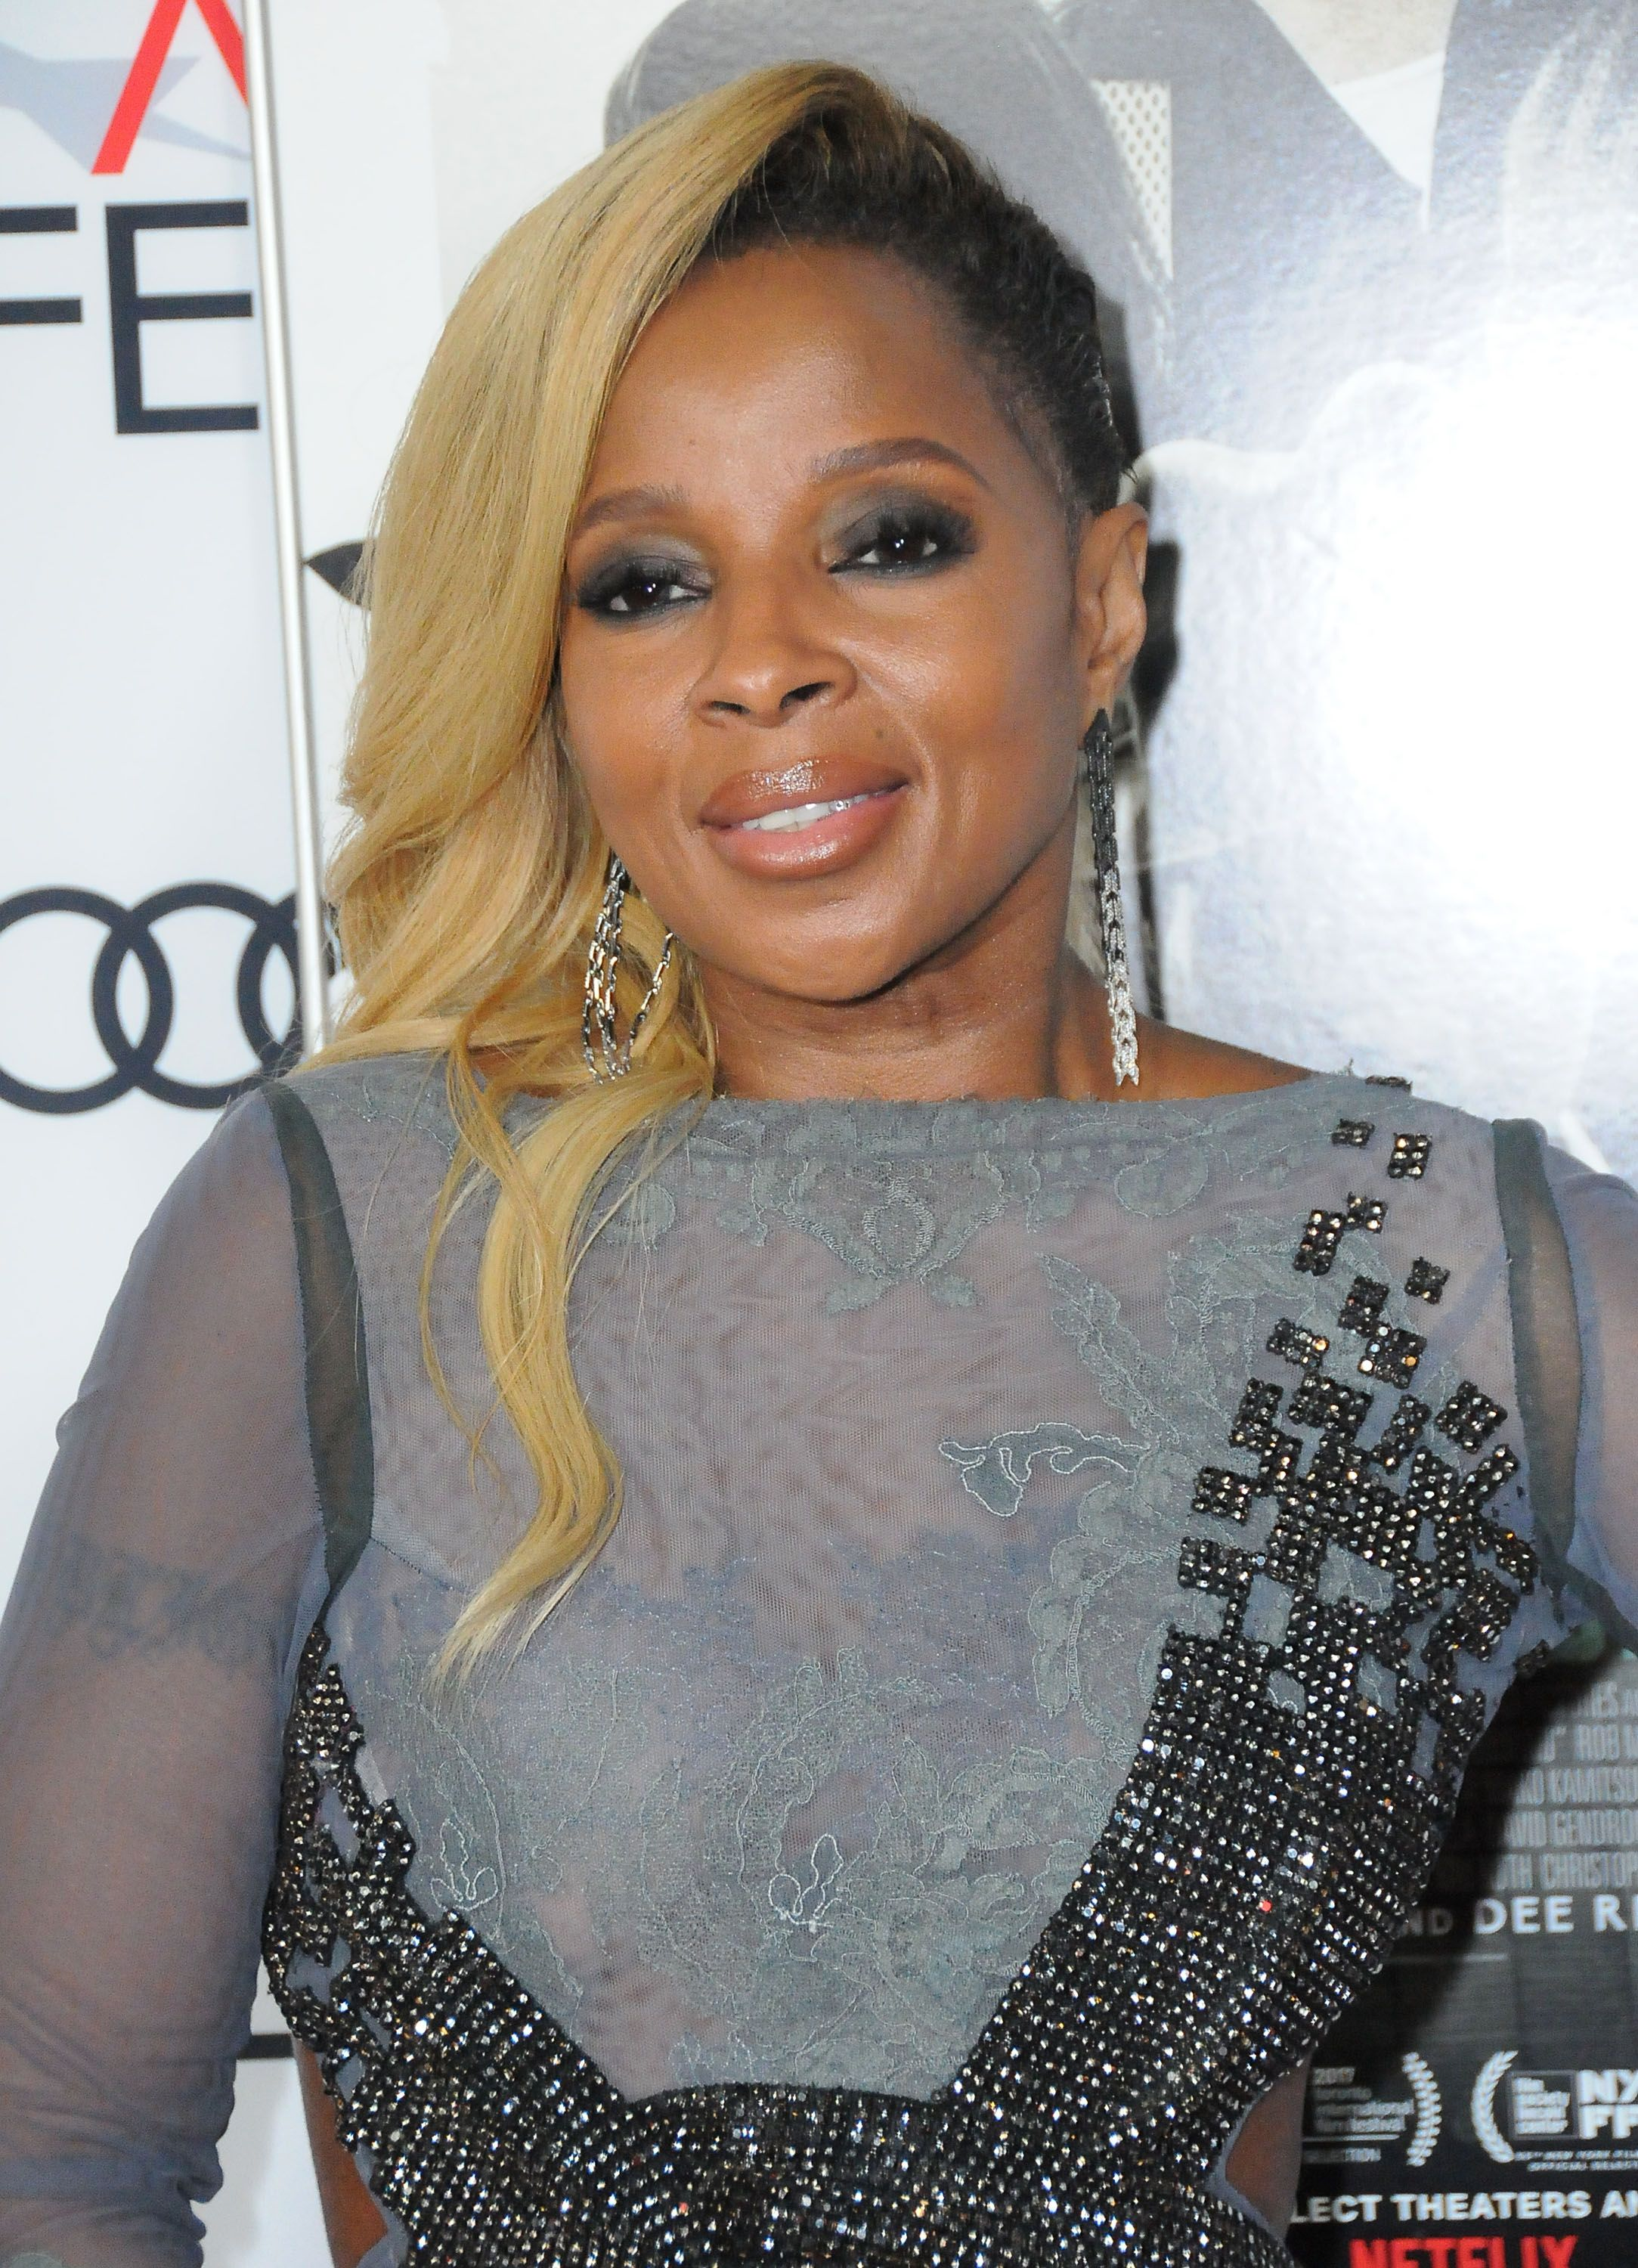 Mary J. Blige at AFI FEST's 2017 screening of Netflix's 'Mudbound' at TCL Chinese Theatre on November 9, 2017 in Hollywood, California | Photo: Getty Images